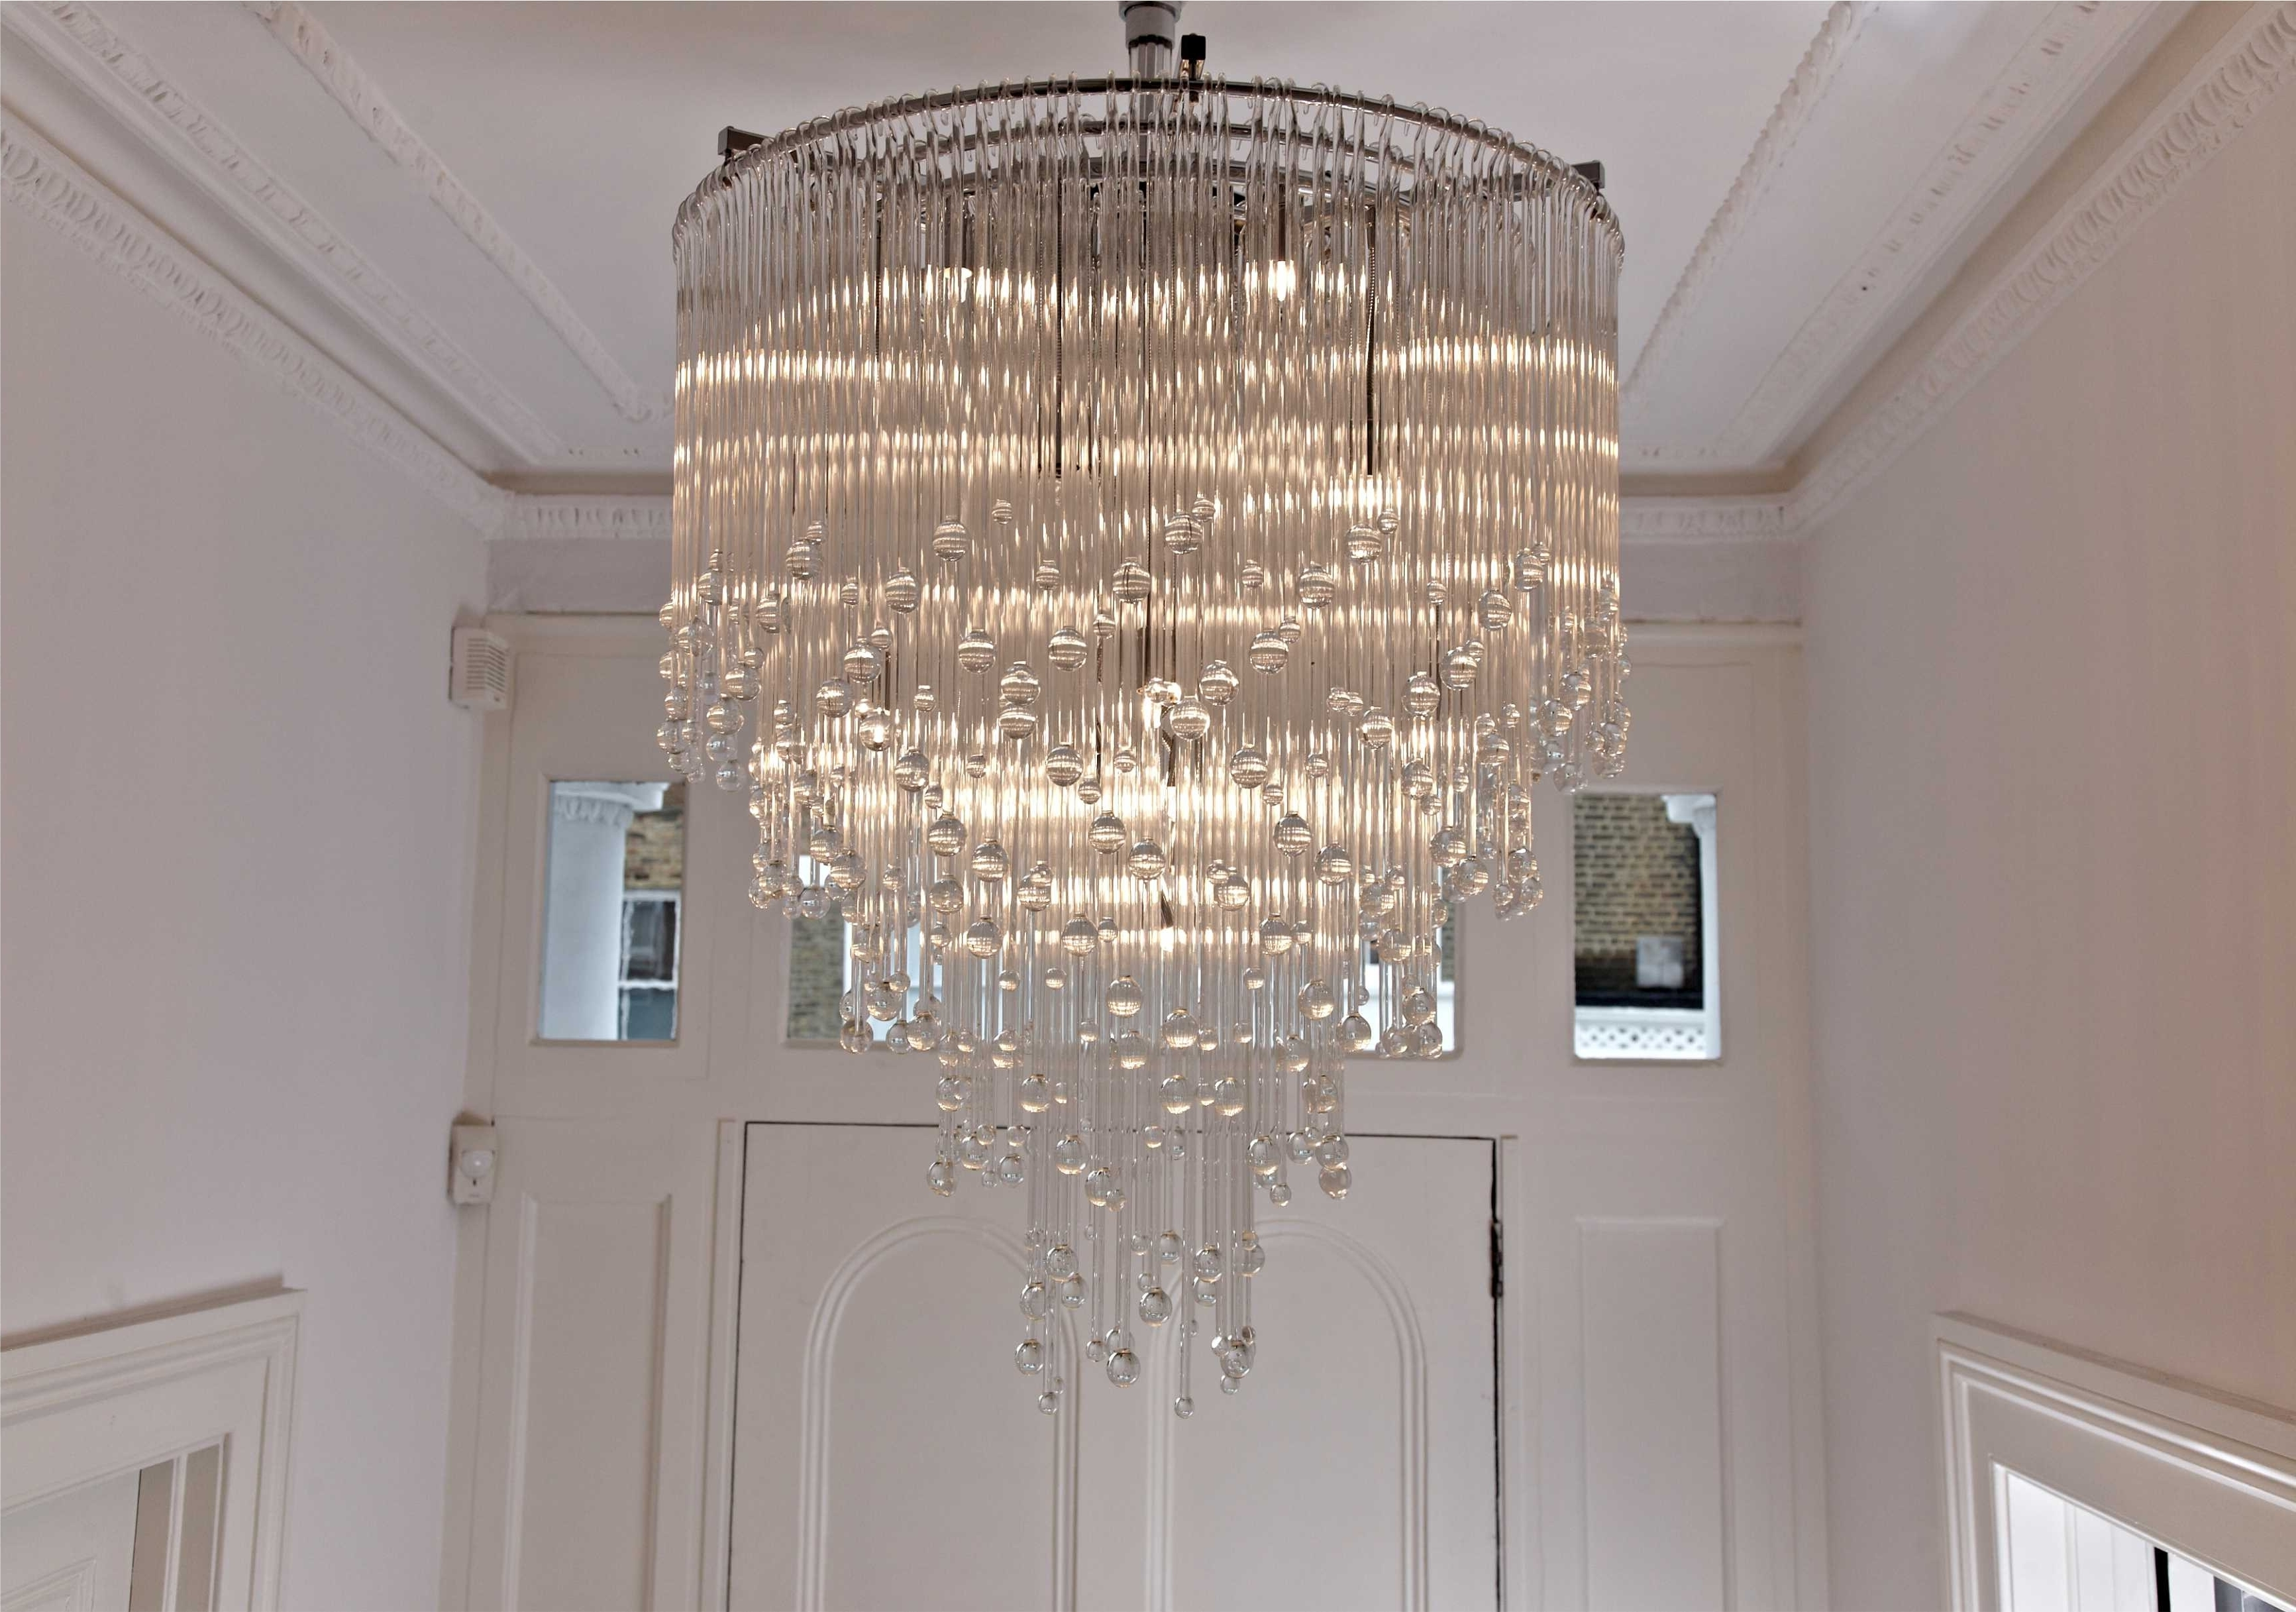 2019 Modern Large Chandeliers Inside Chandeliers : Large Chandeliers Inspirational 15 Ideas Of Extra (View 1 of 20)